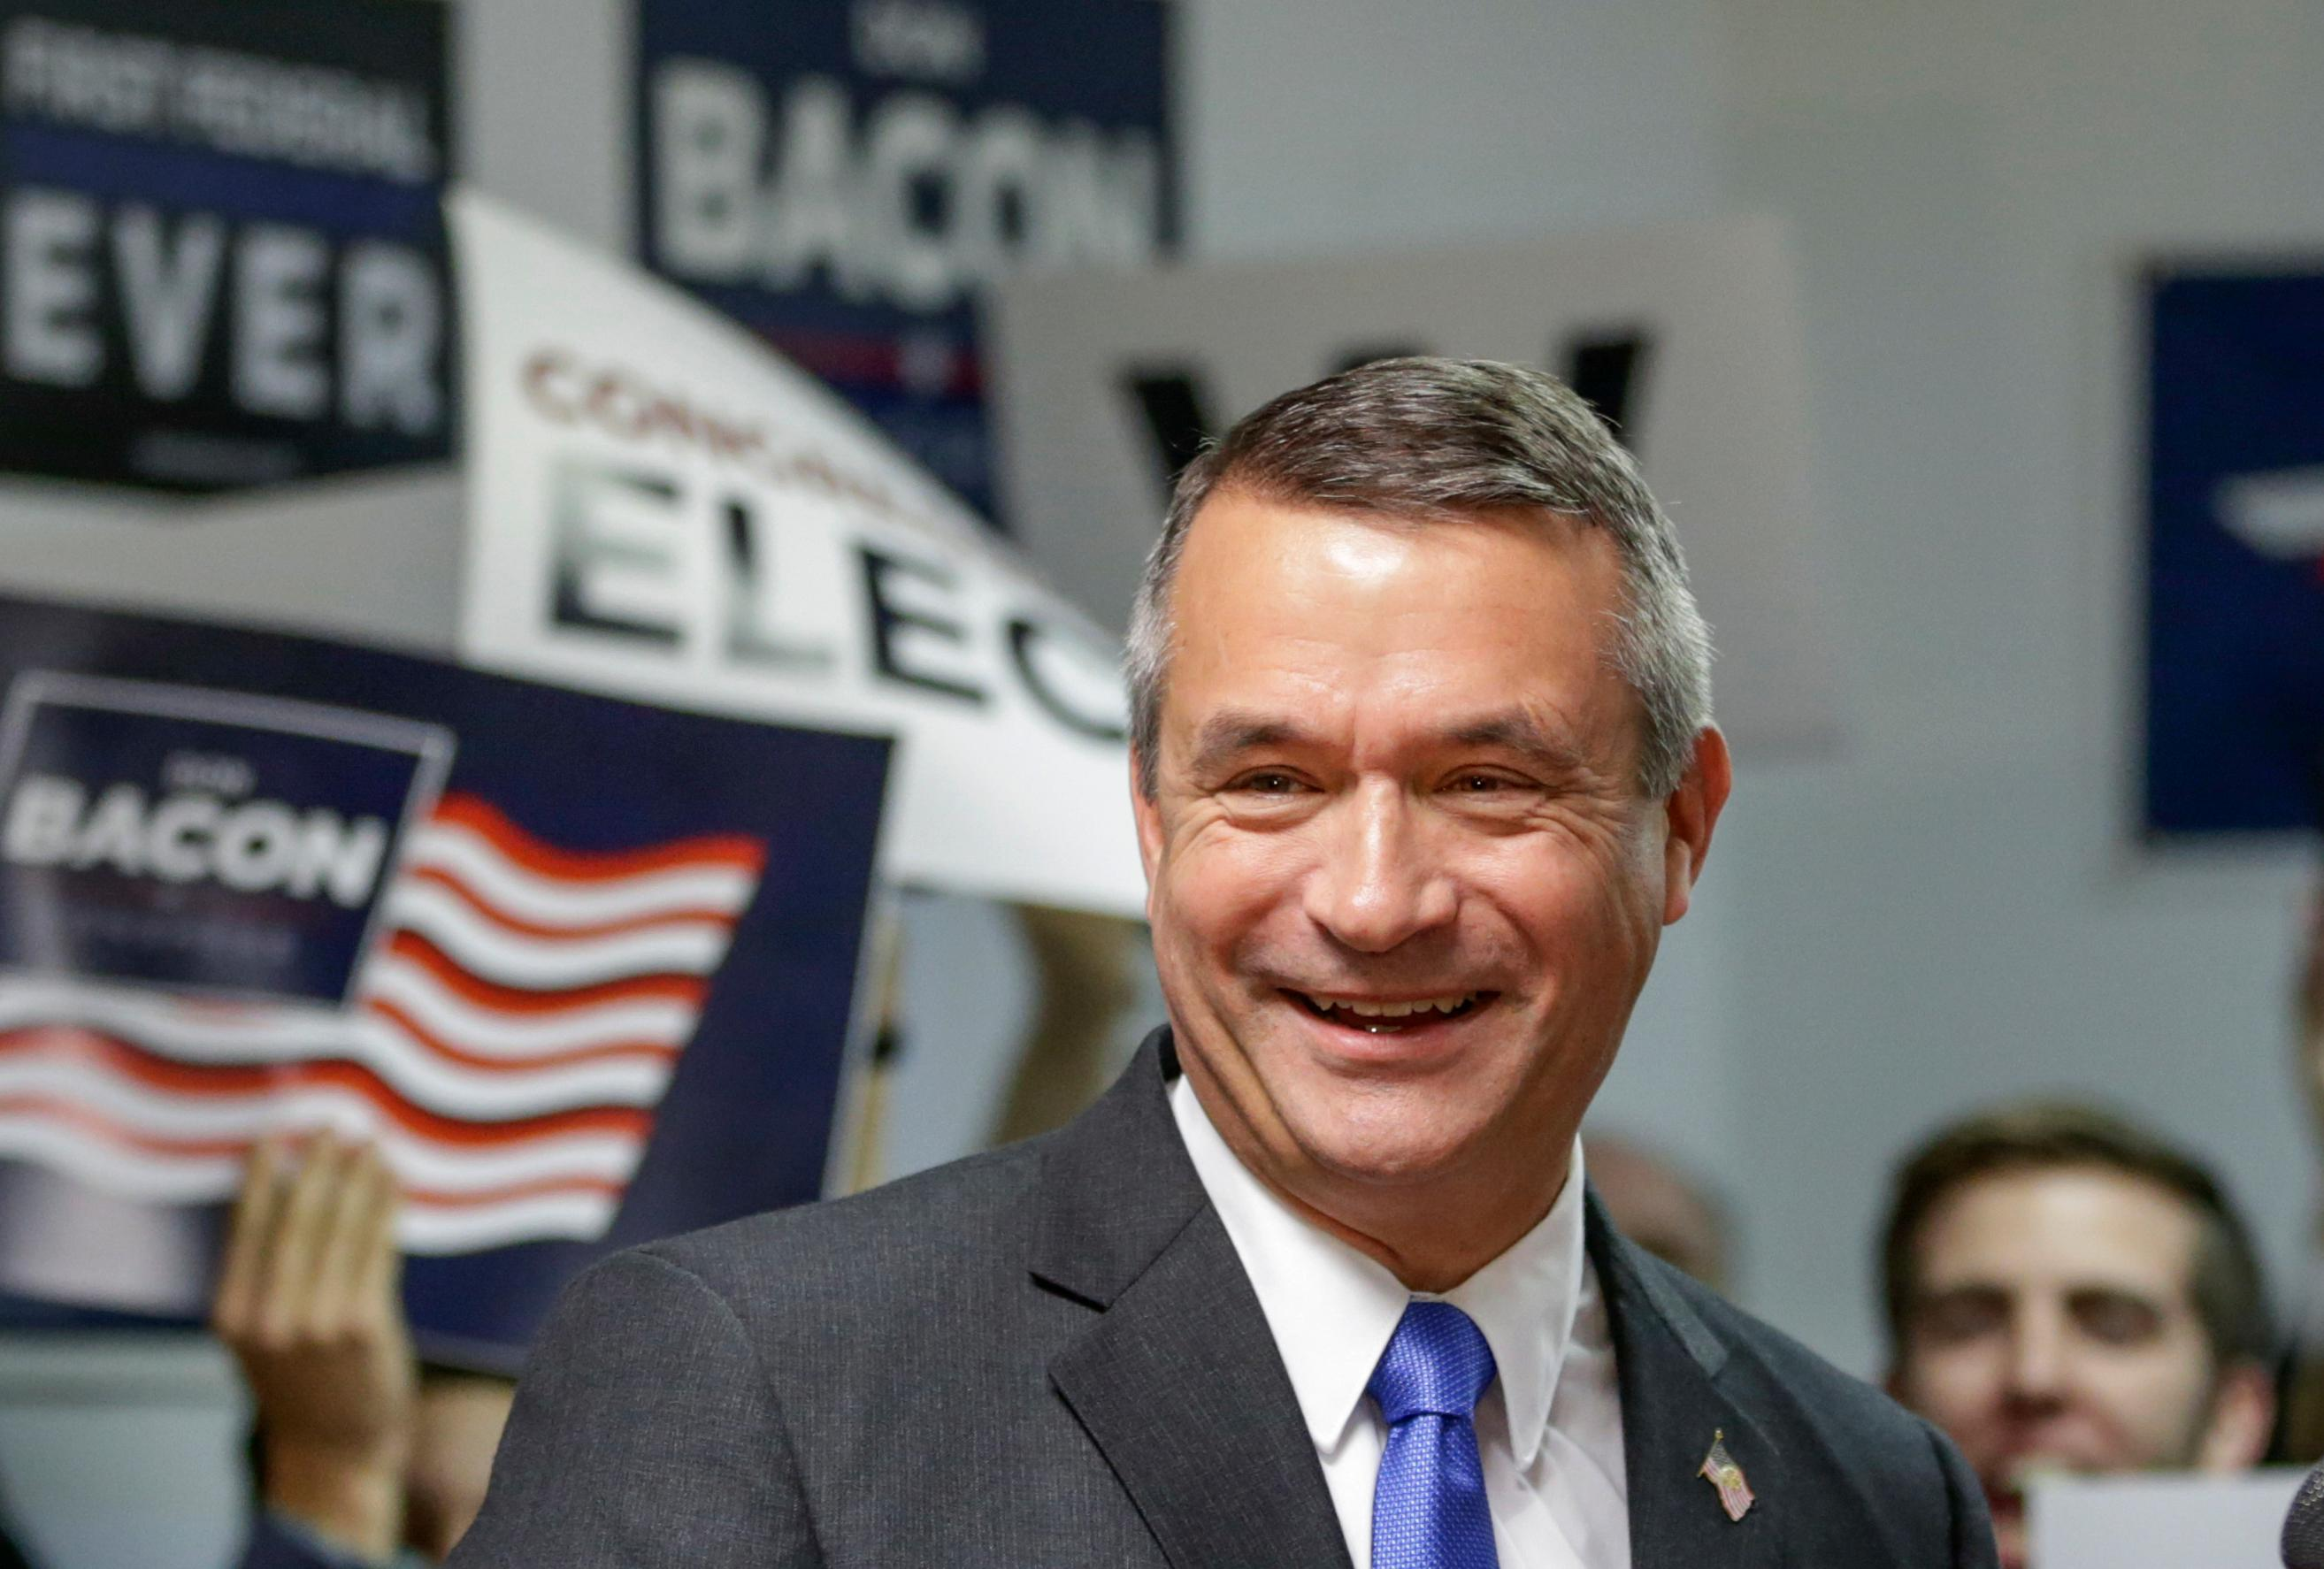 FILE - In this Nov. 9, 2016, file photo, Rep. Don Bacon, R-Neb., smiles during a news conference in Omaha, Neb., after winning the race for Nebraska's 2nd Congressional District. The Omaha-based 2nd Congressional District has changed party hands twice in the past two elections, and Democrats Brad Ashford and Kara Eastman are optimistic they can defeat first-term U.S. Rep. Don Bacon. Democratic and independent voters will pick Ashford or Eastman as the party's nominee in the primary election on Tuesday, May 15, 2018. (AP Photo/Nati Harnik)